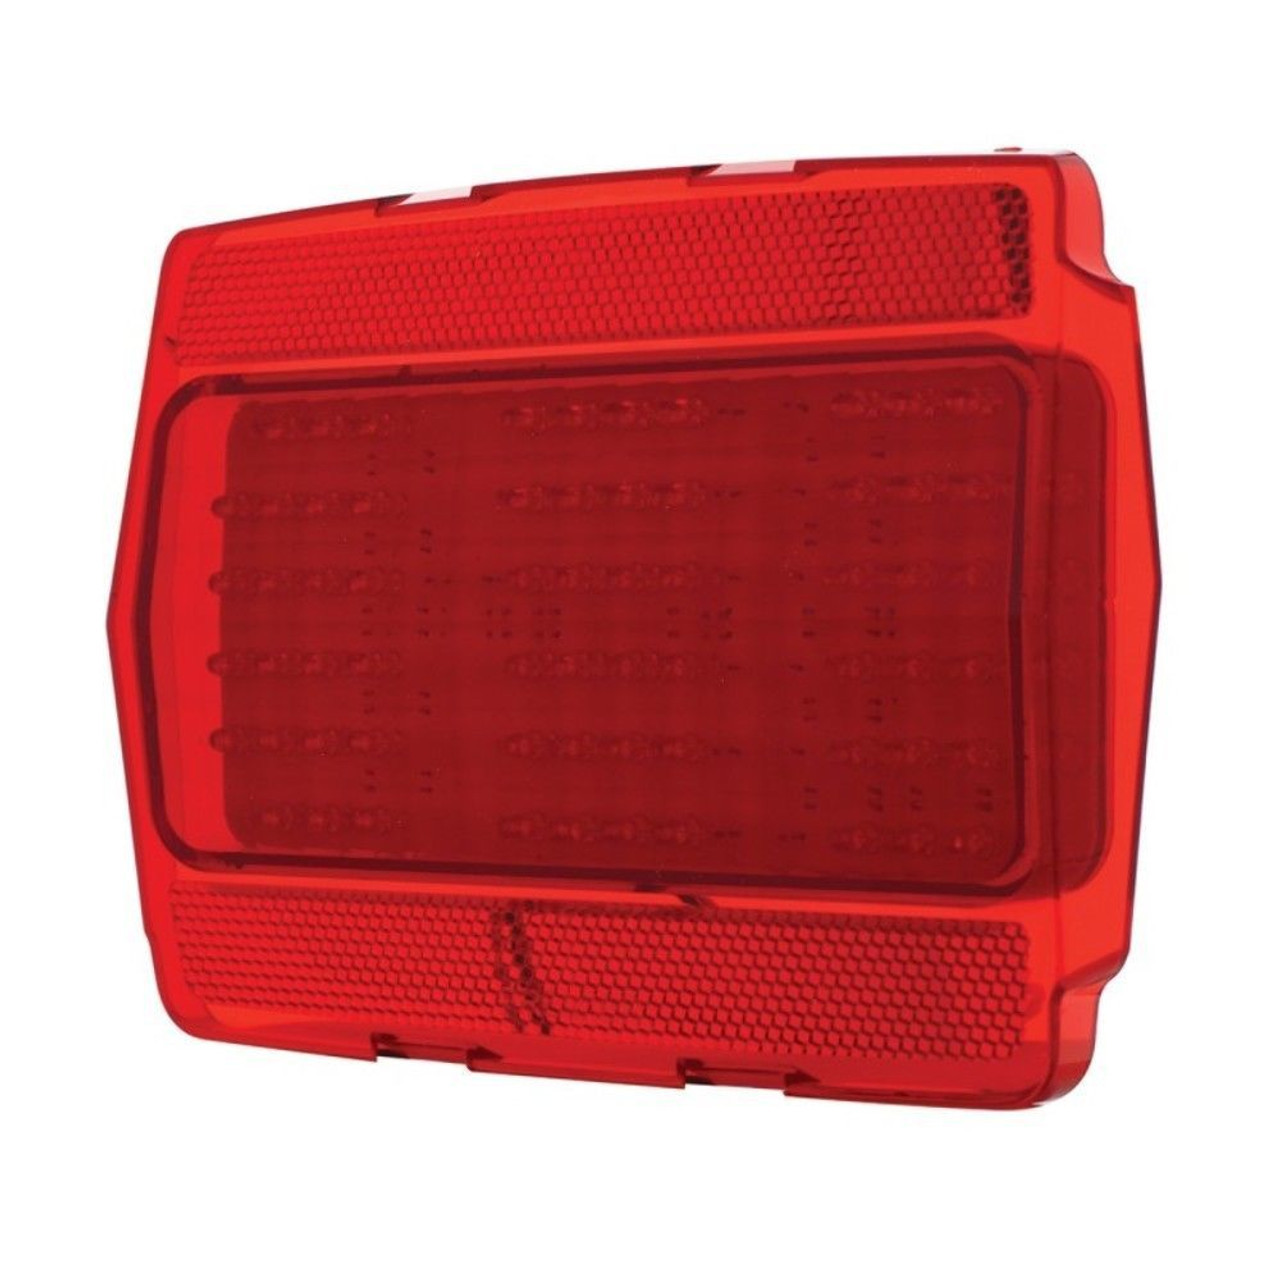 1964 1/2 - 1966 Ford Mustang LED Sequential Tail Light, Right or Left Hand Side